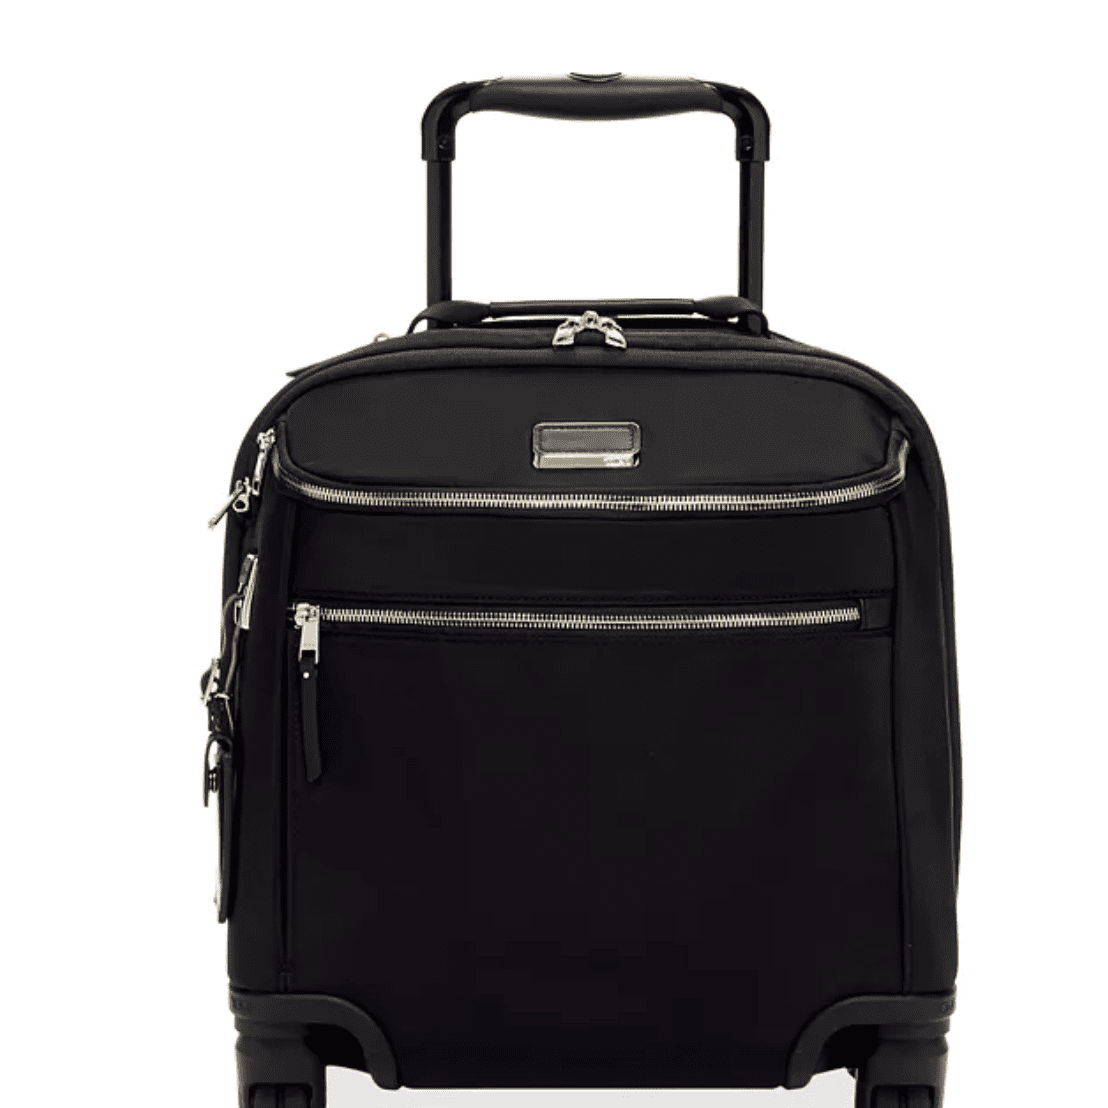 Tumi Voyageur Oxford Compact Carry-On